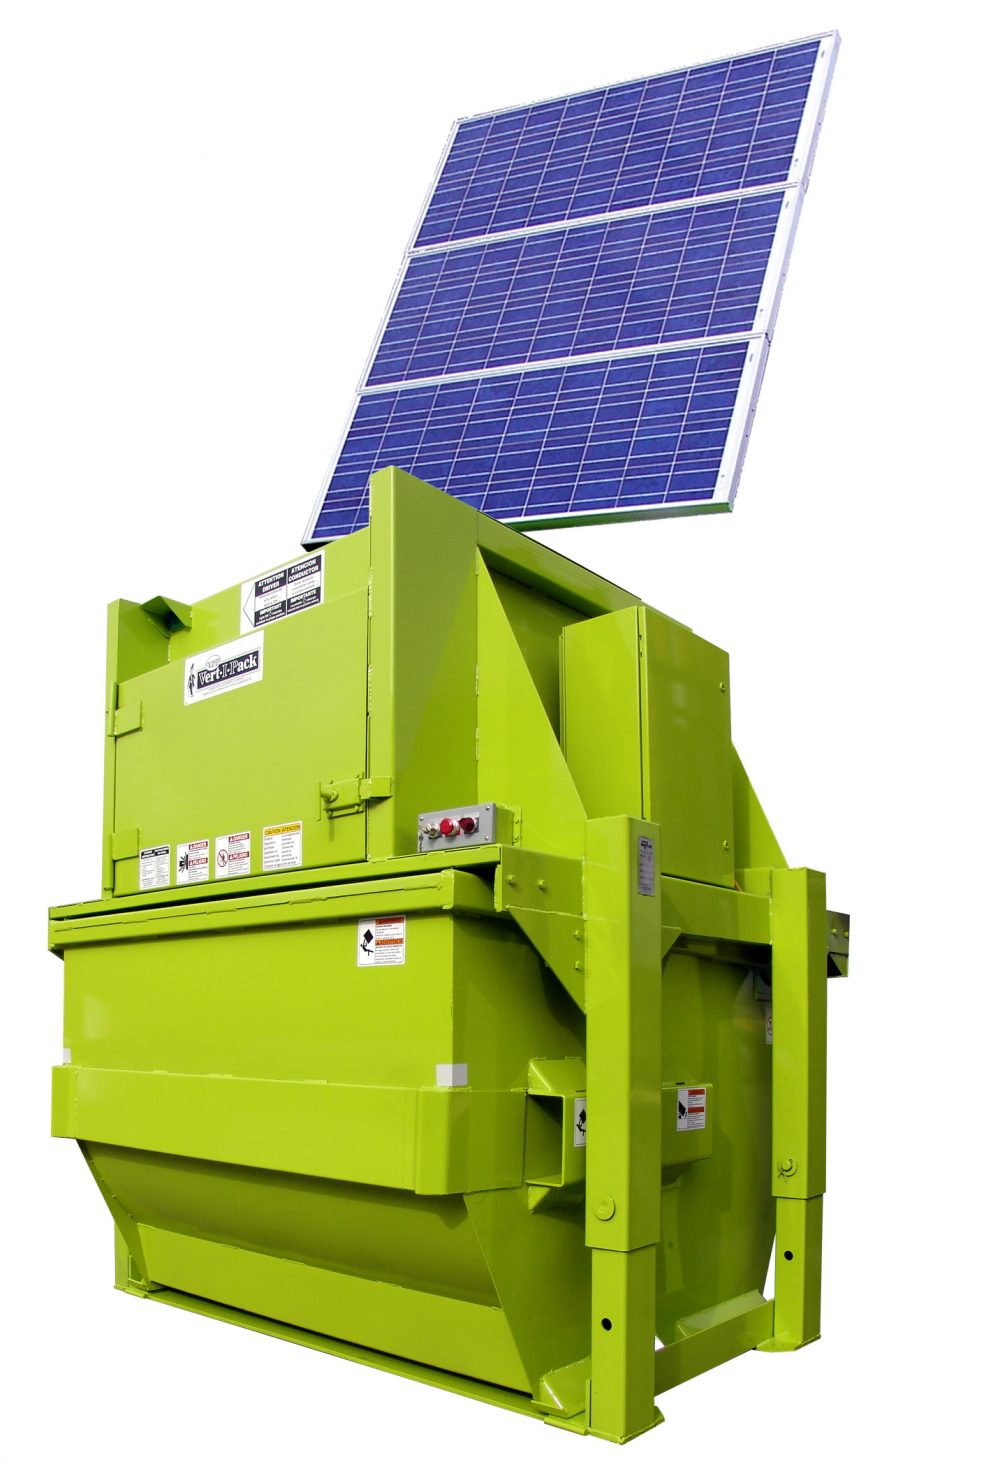 solar hybrid power unit